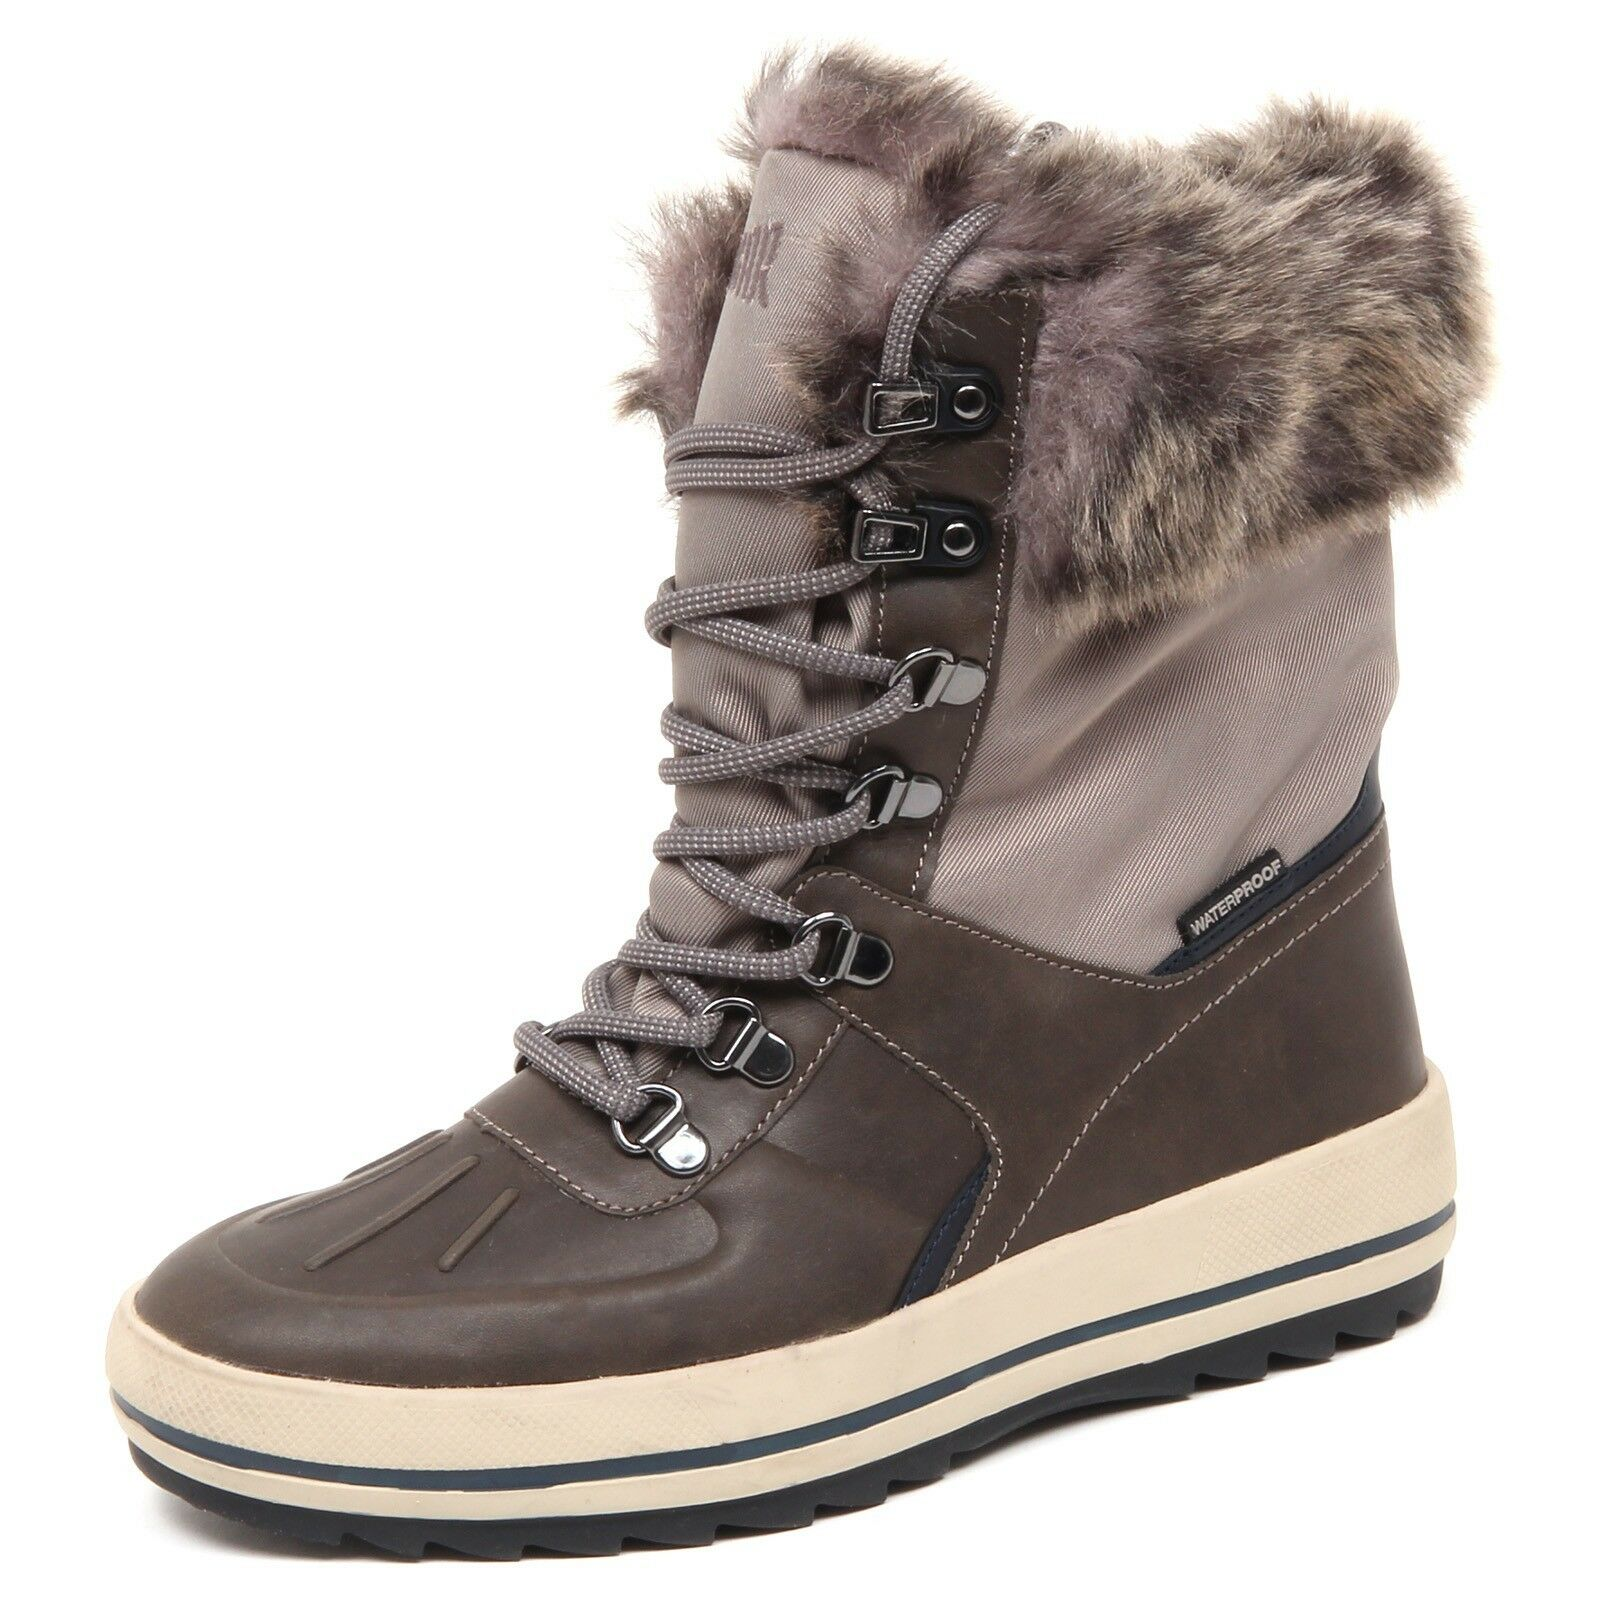 D8498 (without box) stivale donna tissue COUGAR VIPER Marronee taupe avvio woman